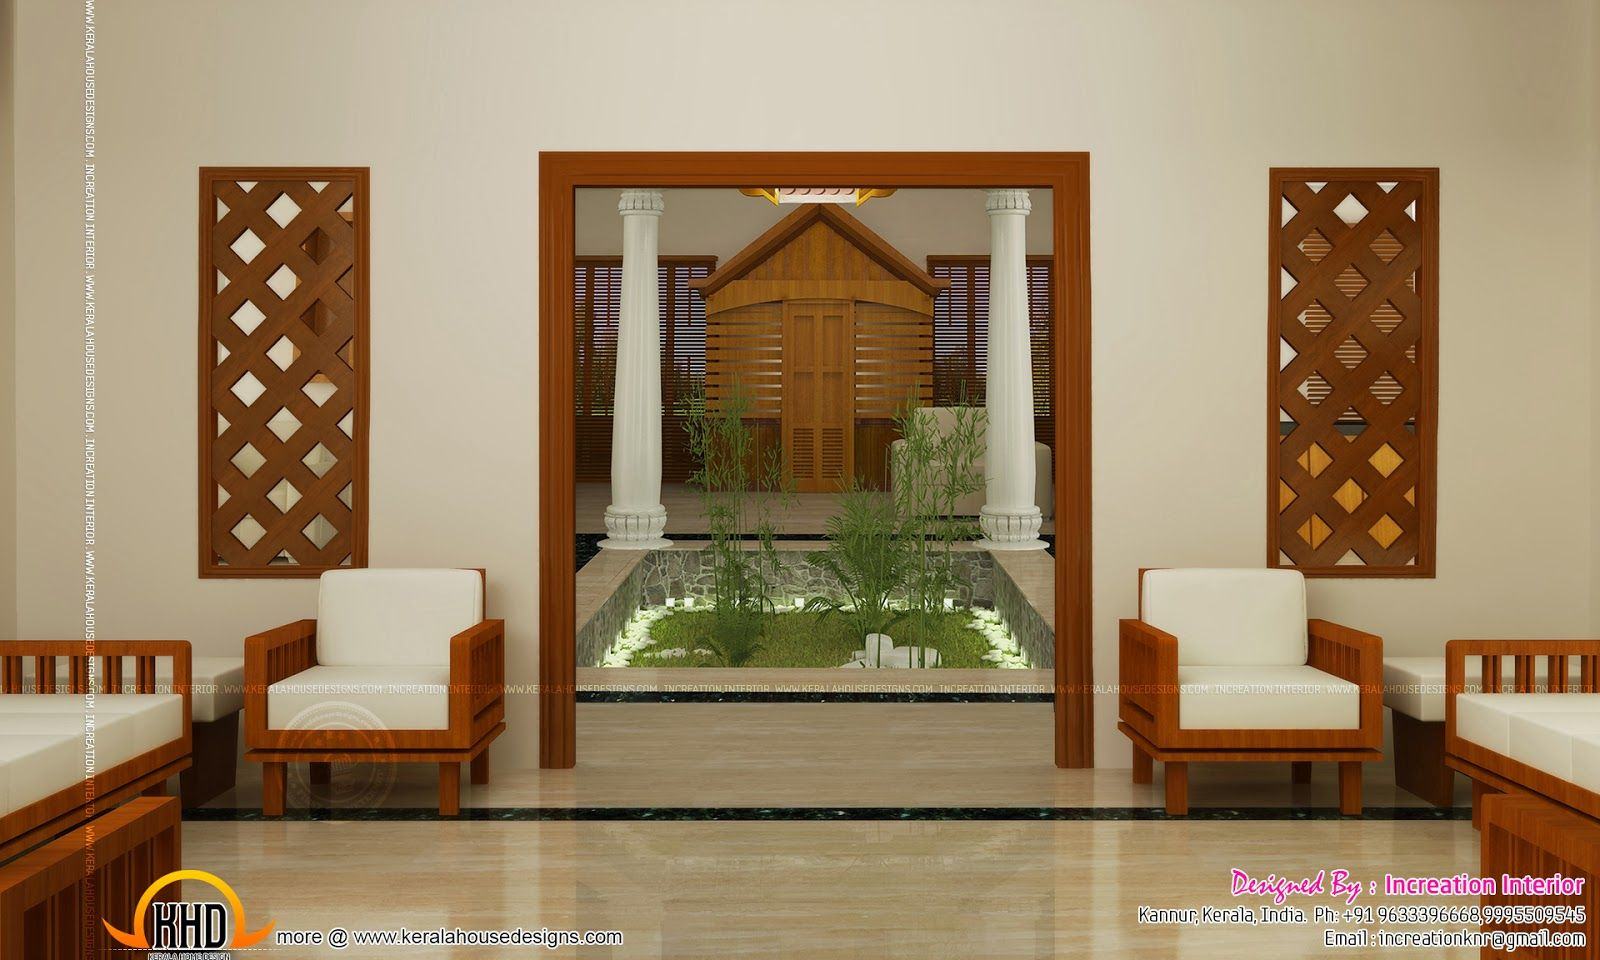 beautiful houses interior in kerala Google Search  : 6ca210eed9044d551f397827d34f3792 from www.pinterest.com size 1600 x 960 jpeg 247kB